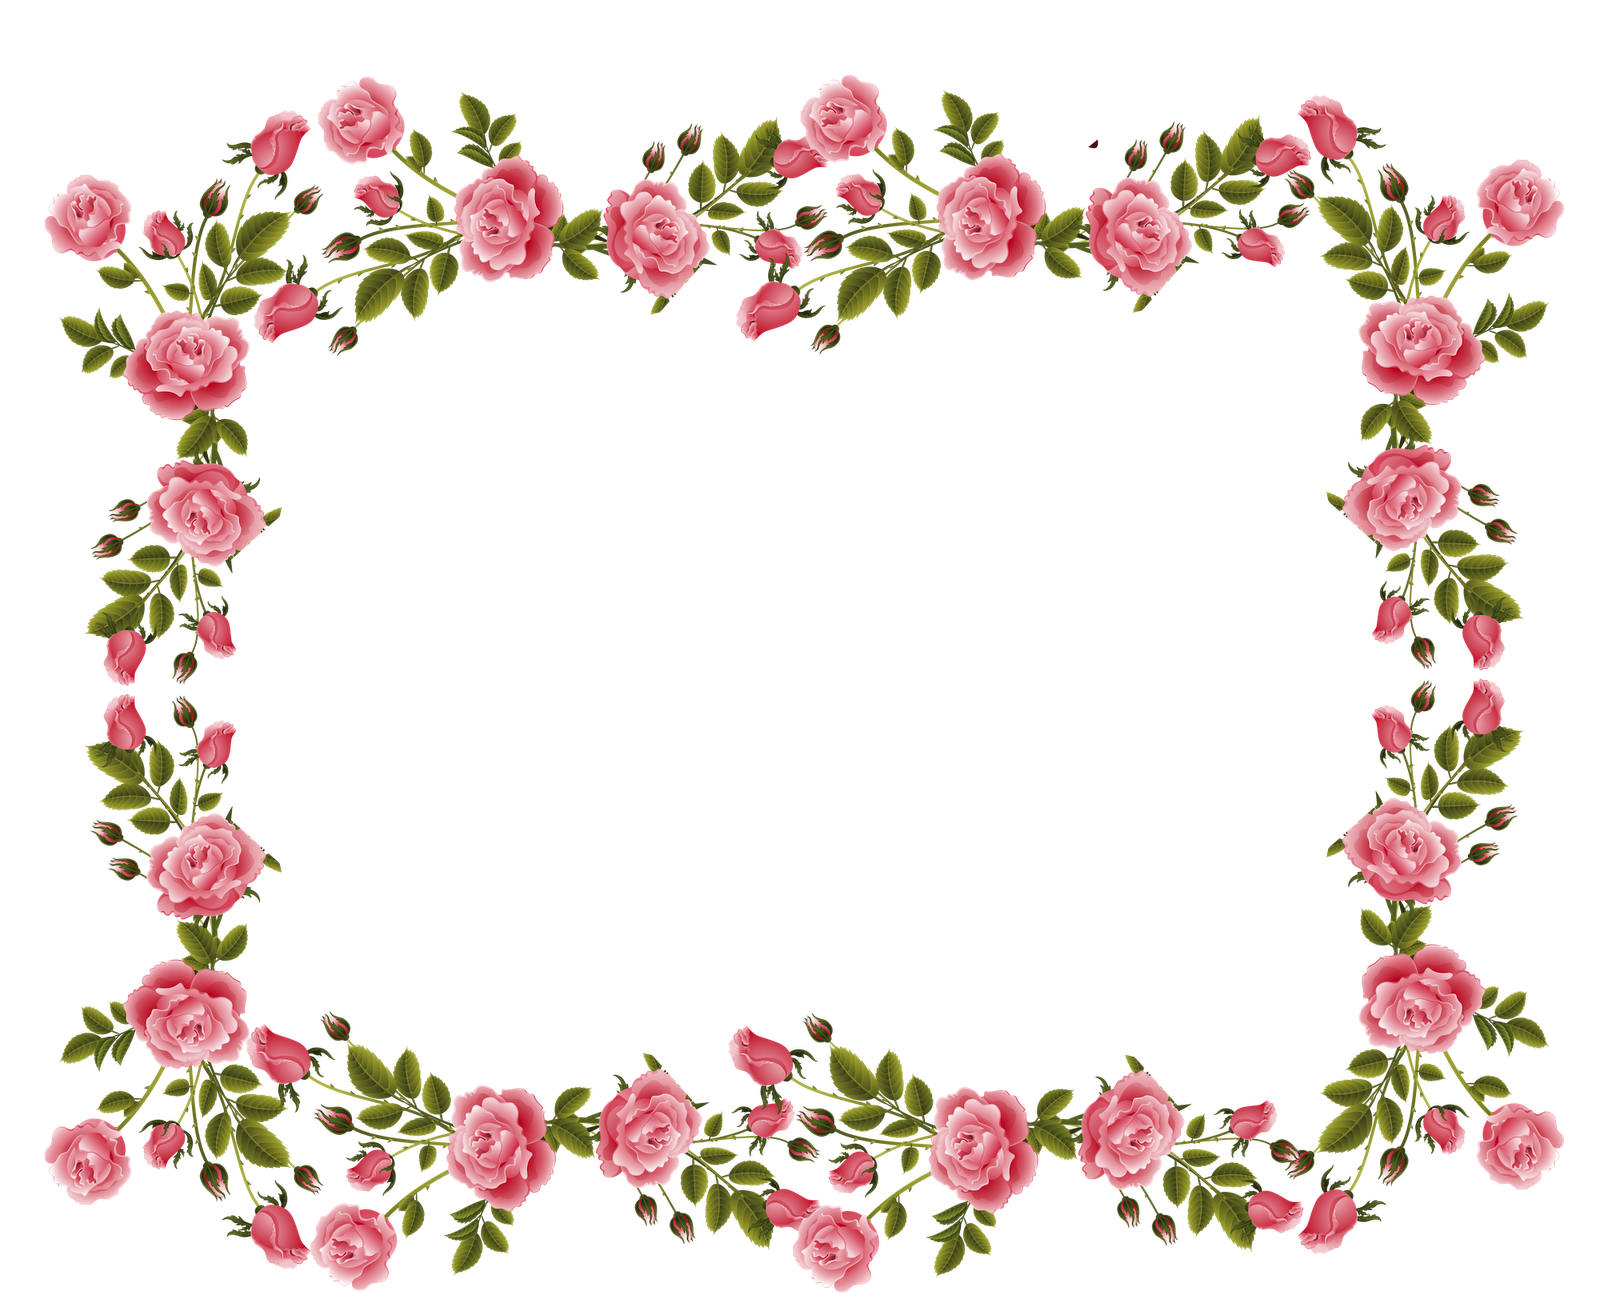 Rose border clipart jaxstormalverse clip art for clipart flower border clipart panda rose pink rose border png border clipart png free clip art images freeclipartpw pink roses decoration this image as mightylinksfo Images